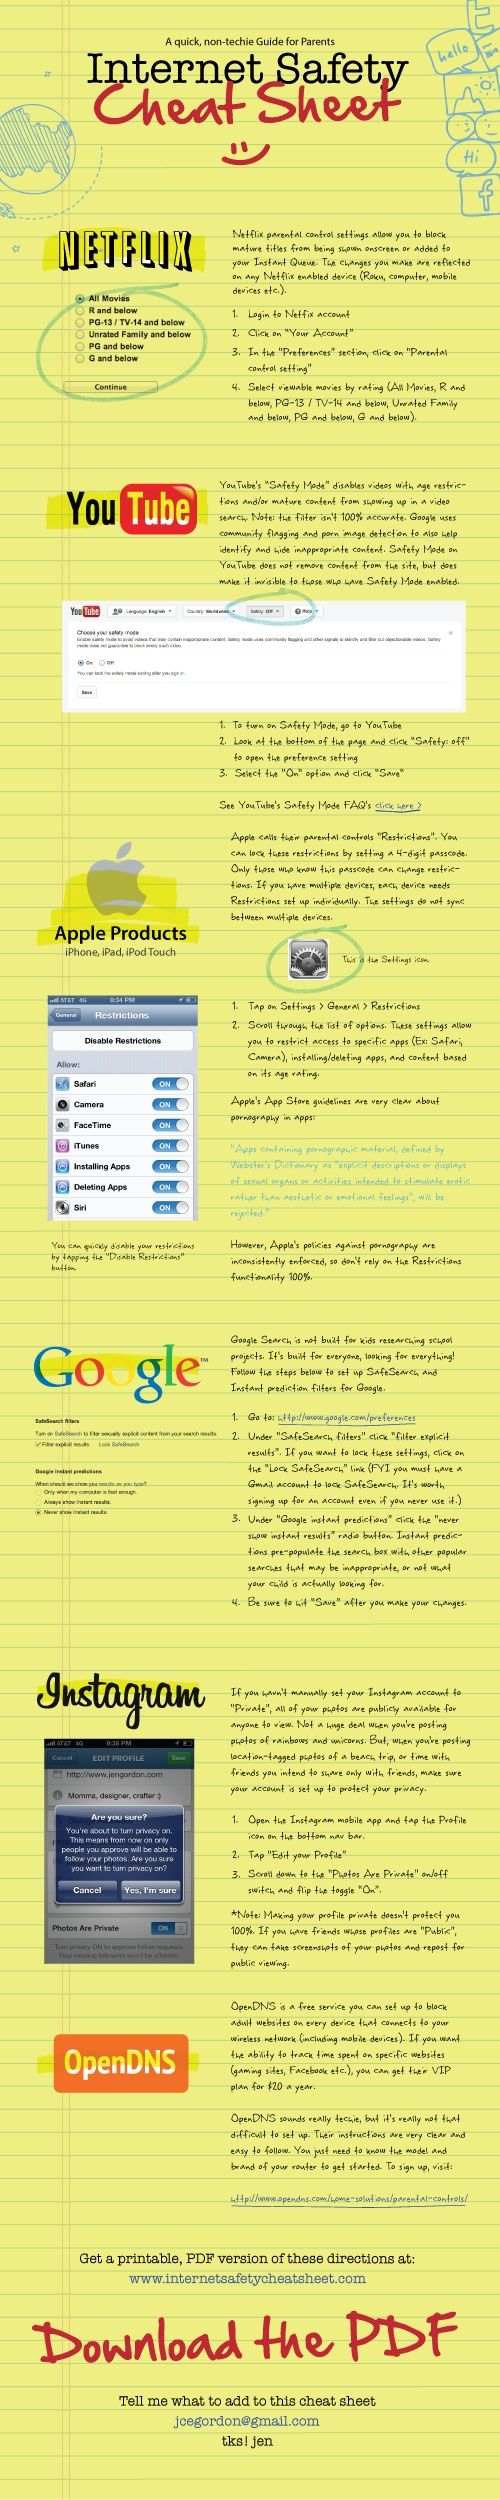 diy INTERNET SAFETY - An outstanding internet safety cheat sheet for teachers and parents.  Easy to understand for non-techie people like me.